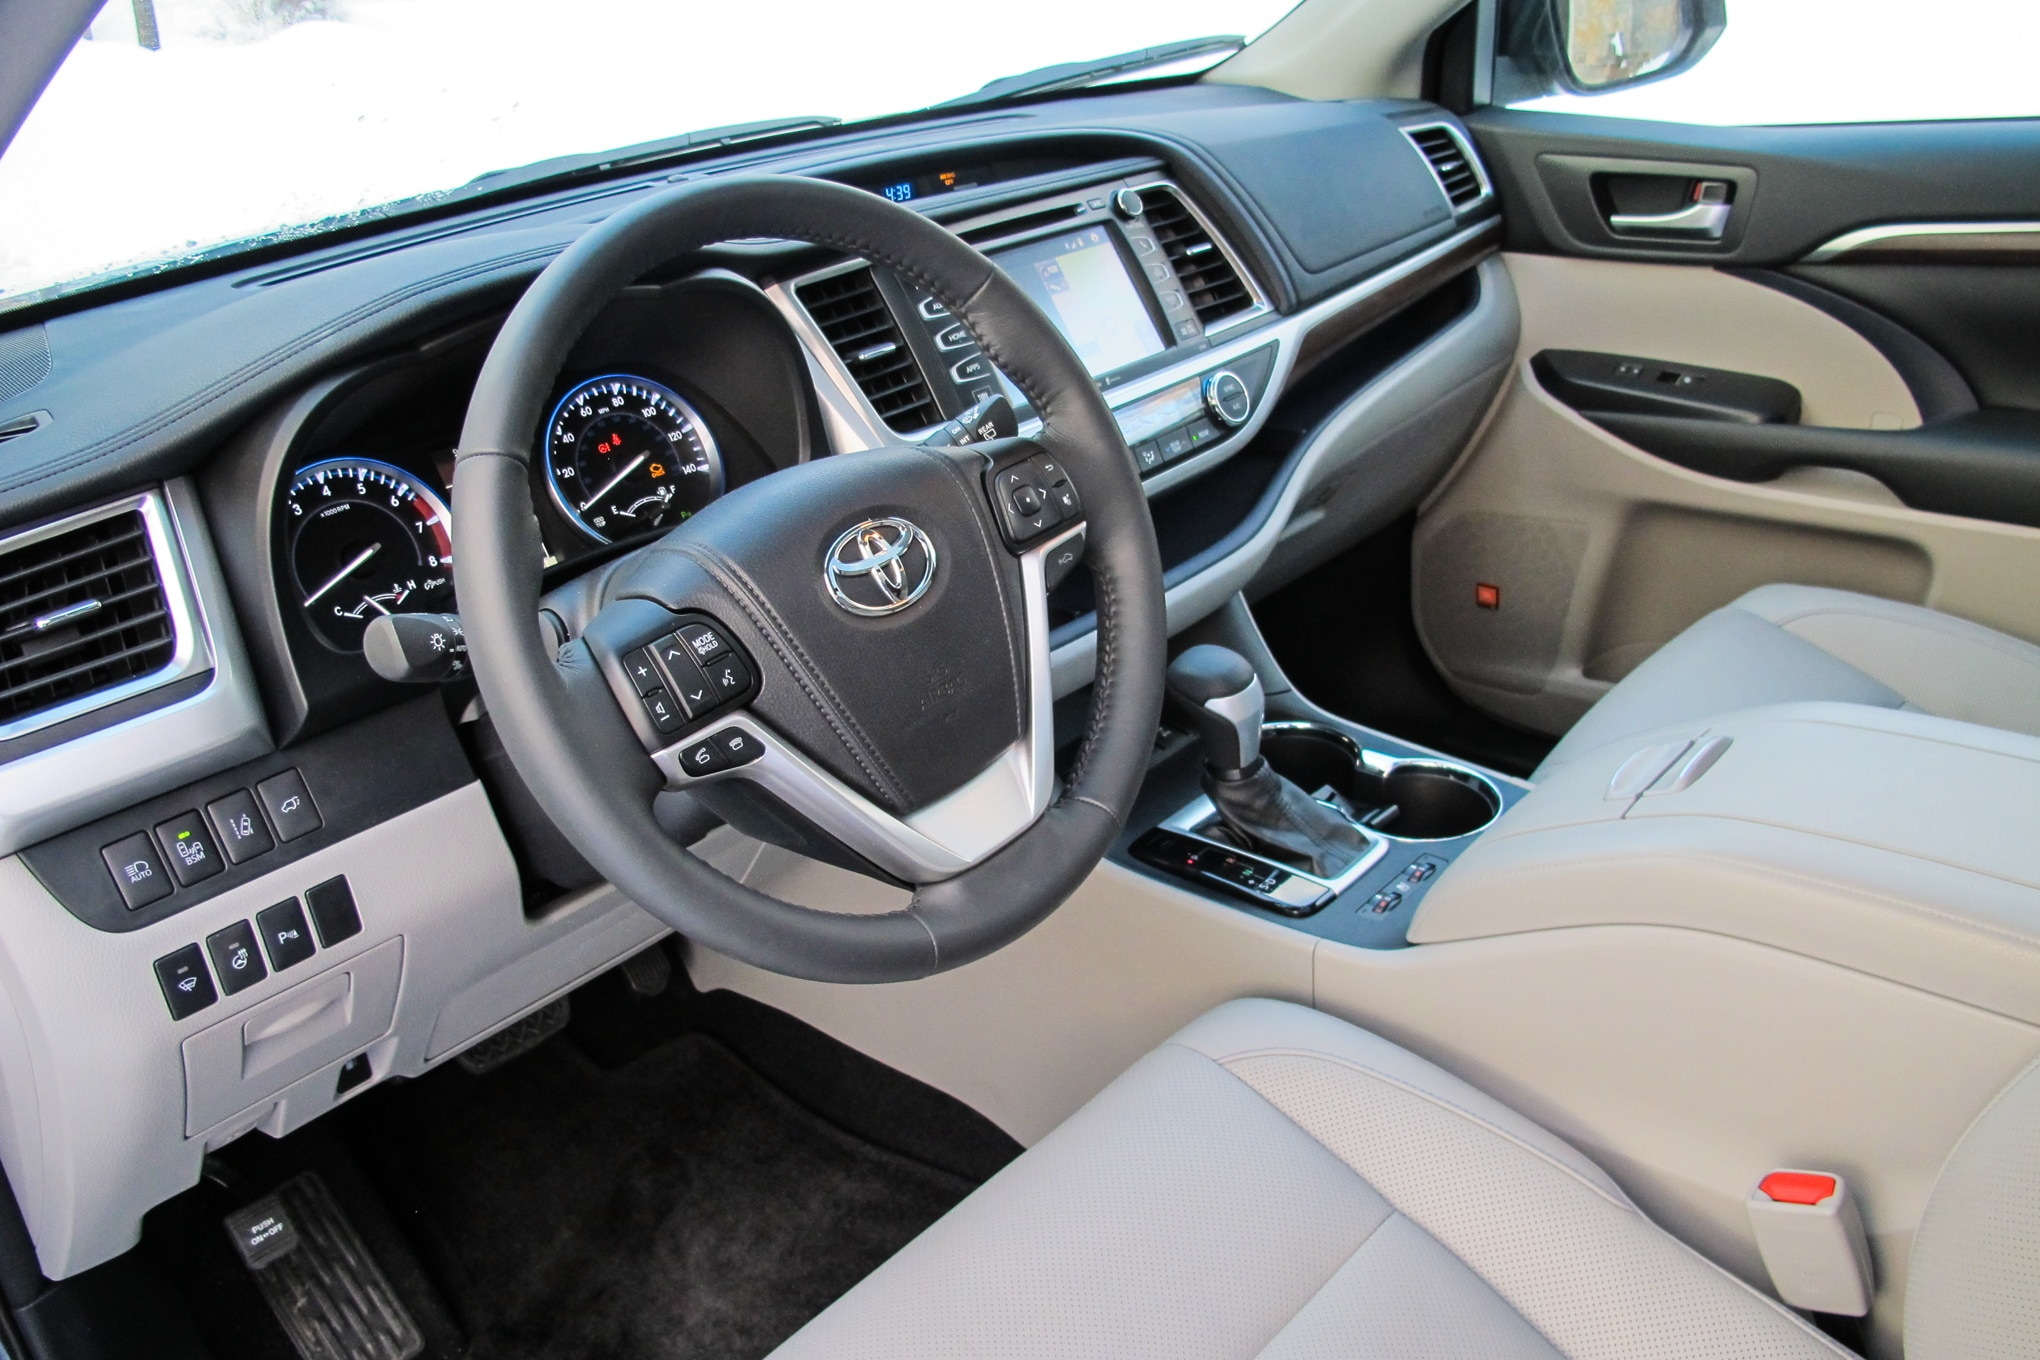 Captivating 2014 Toyota Highlander. 62|138